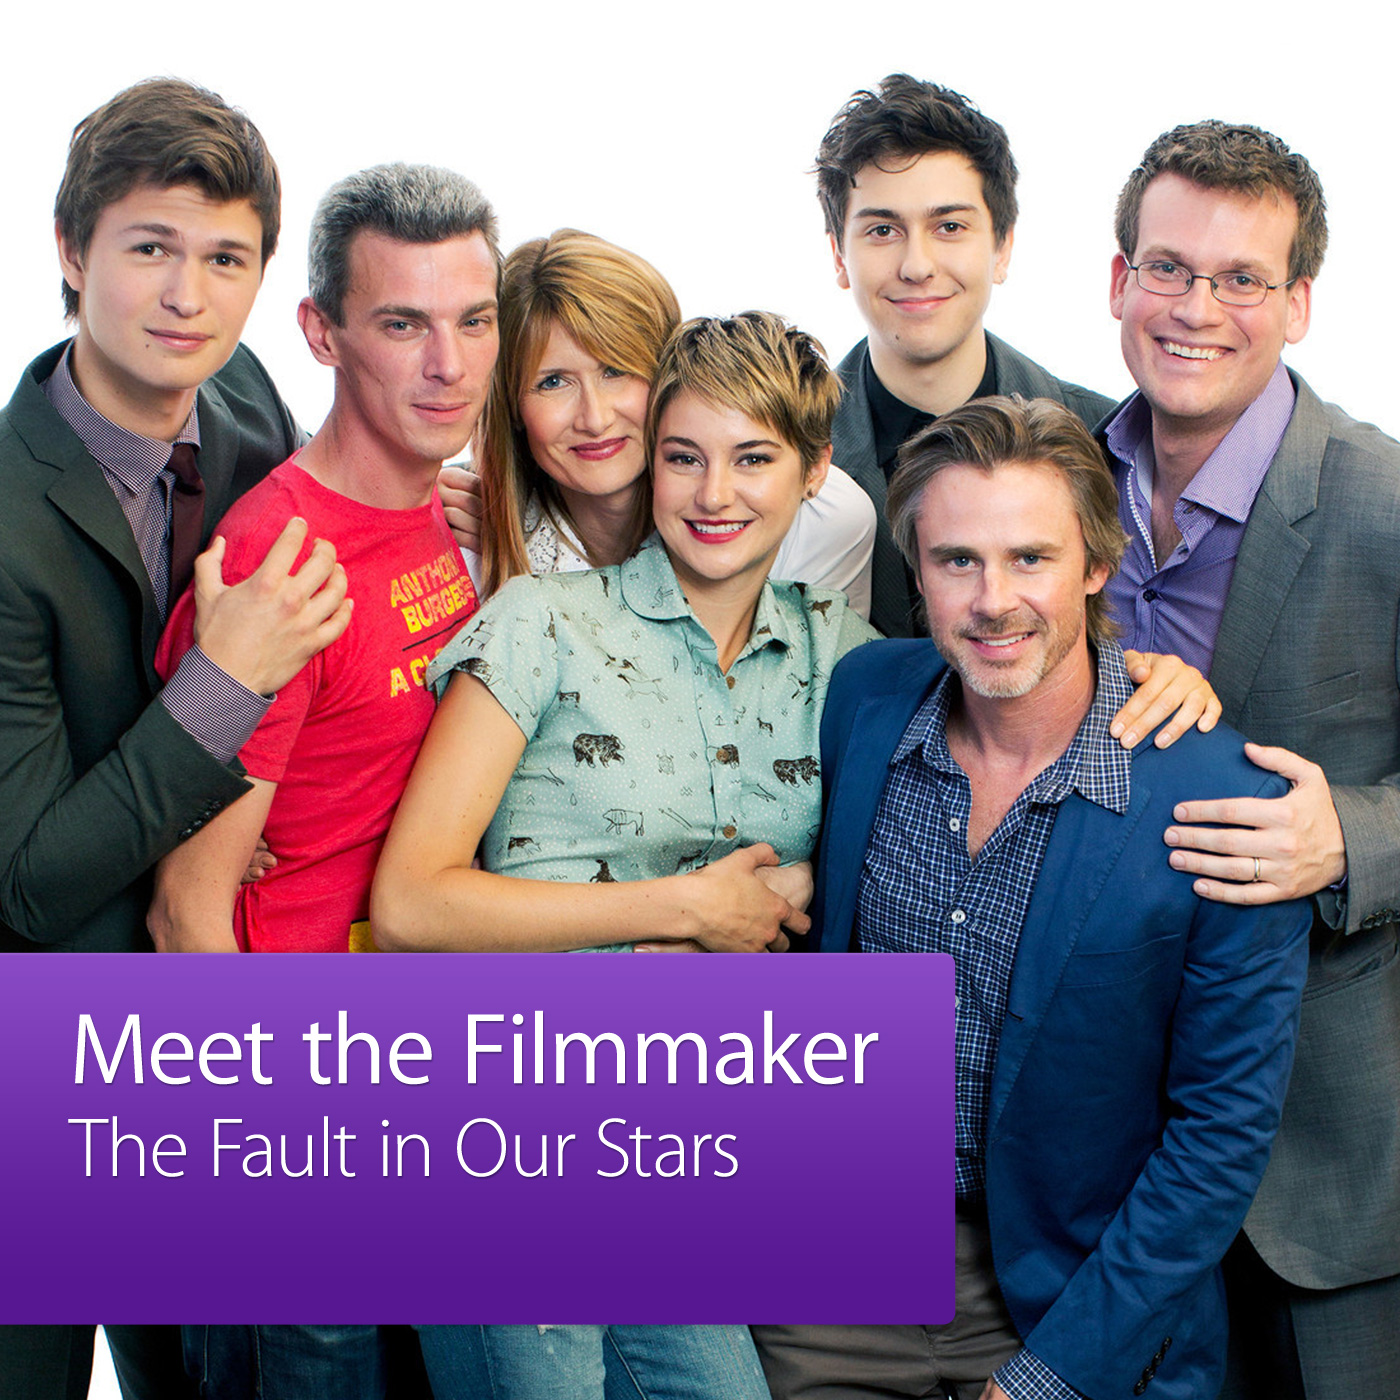 The Fault in Our Stars: Meet the Filmmaker